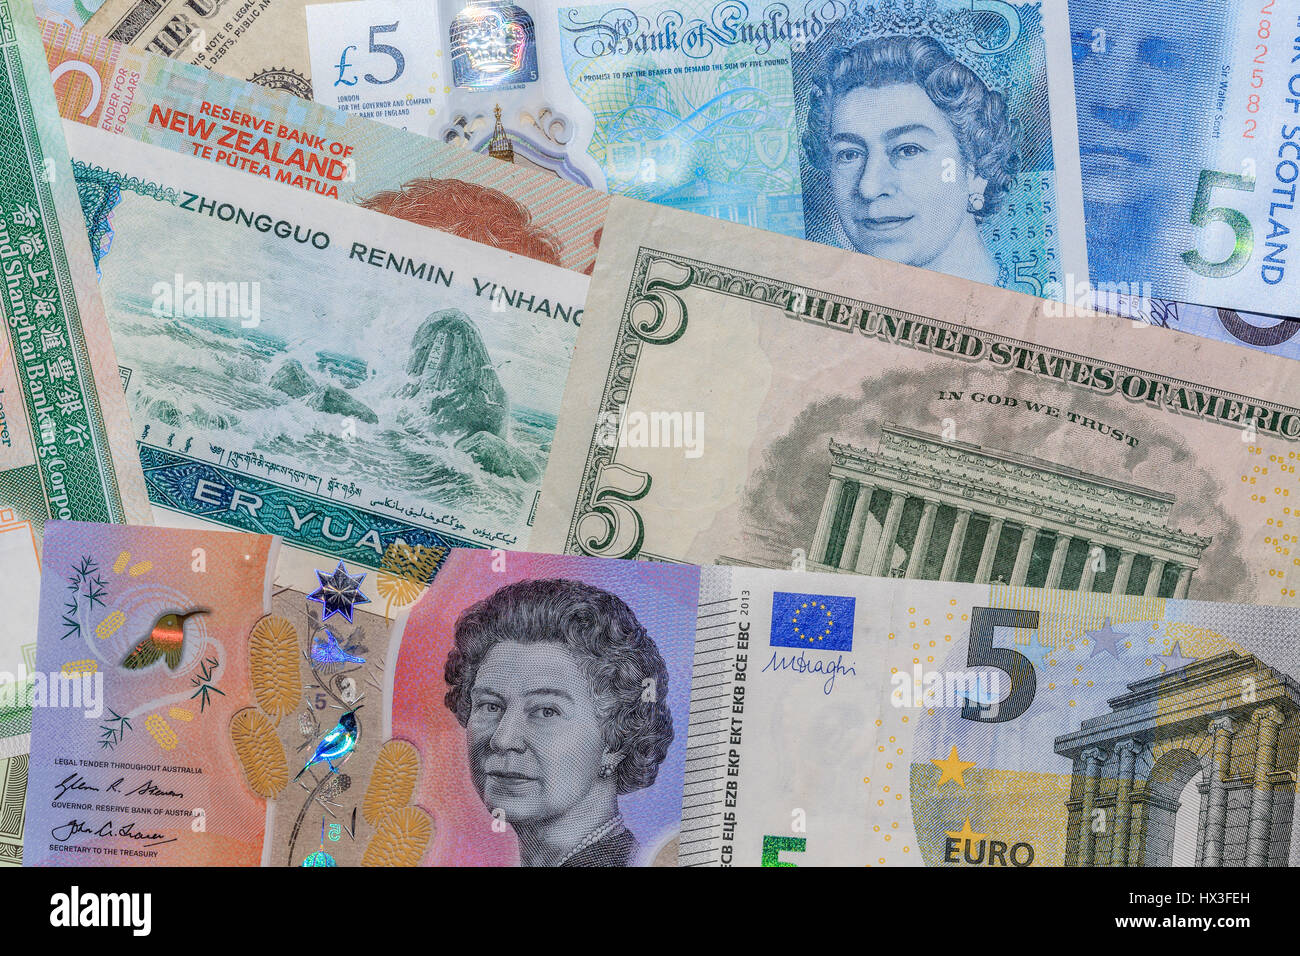 Foreign Currency banknotes - Stock Image